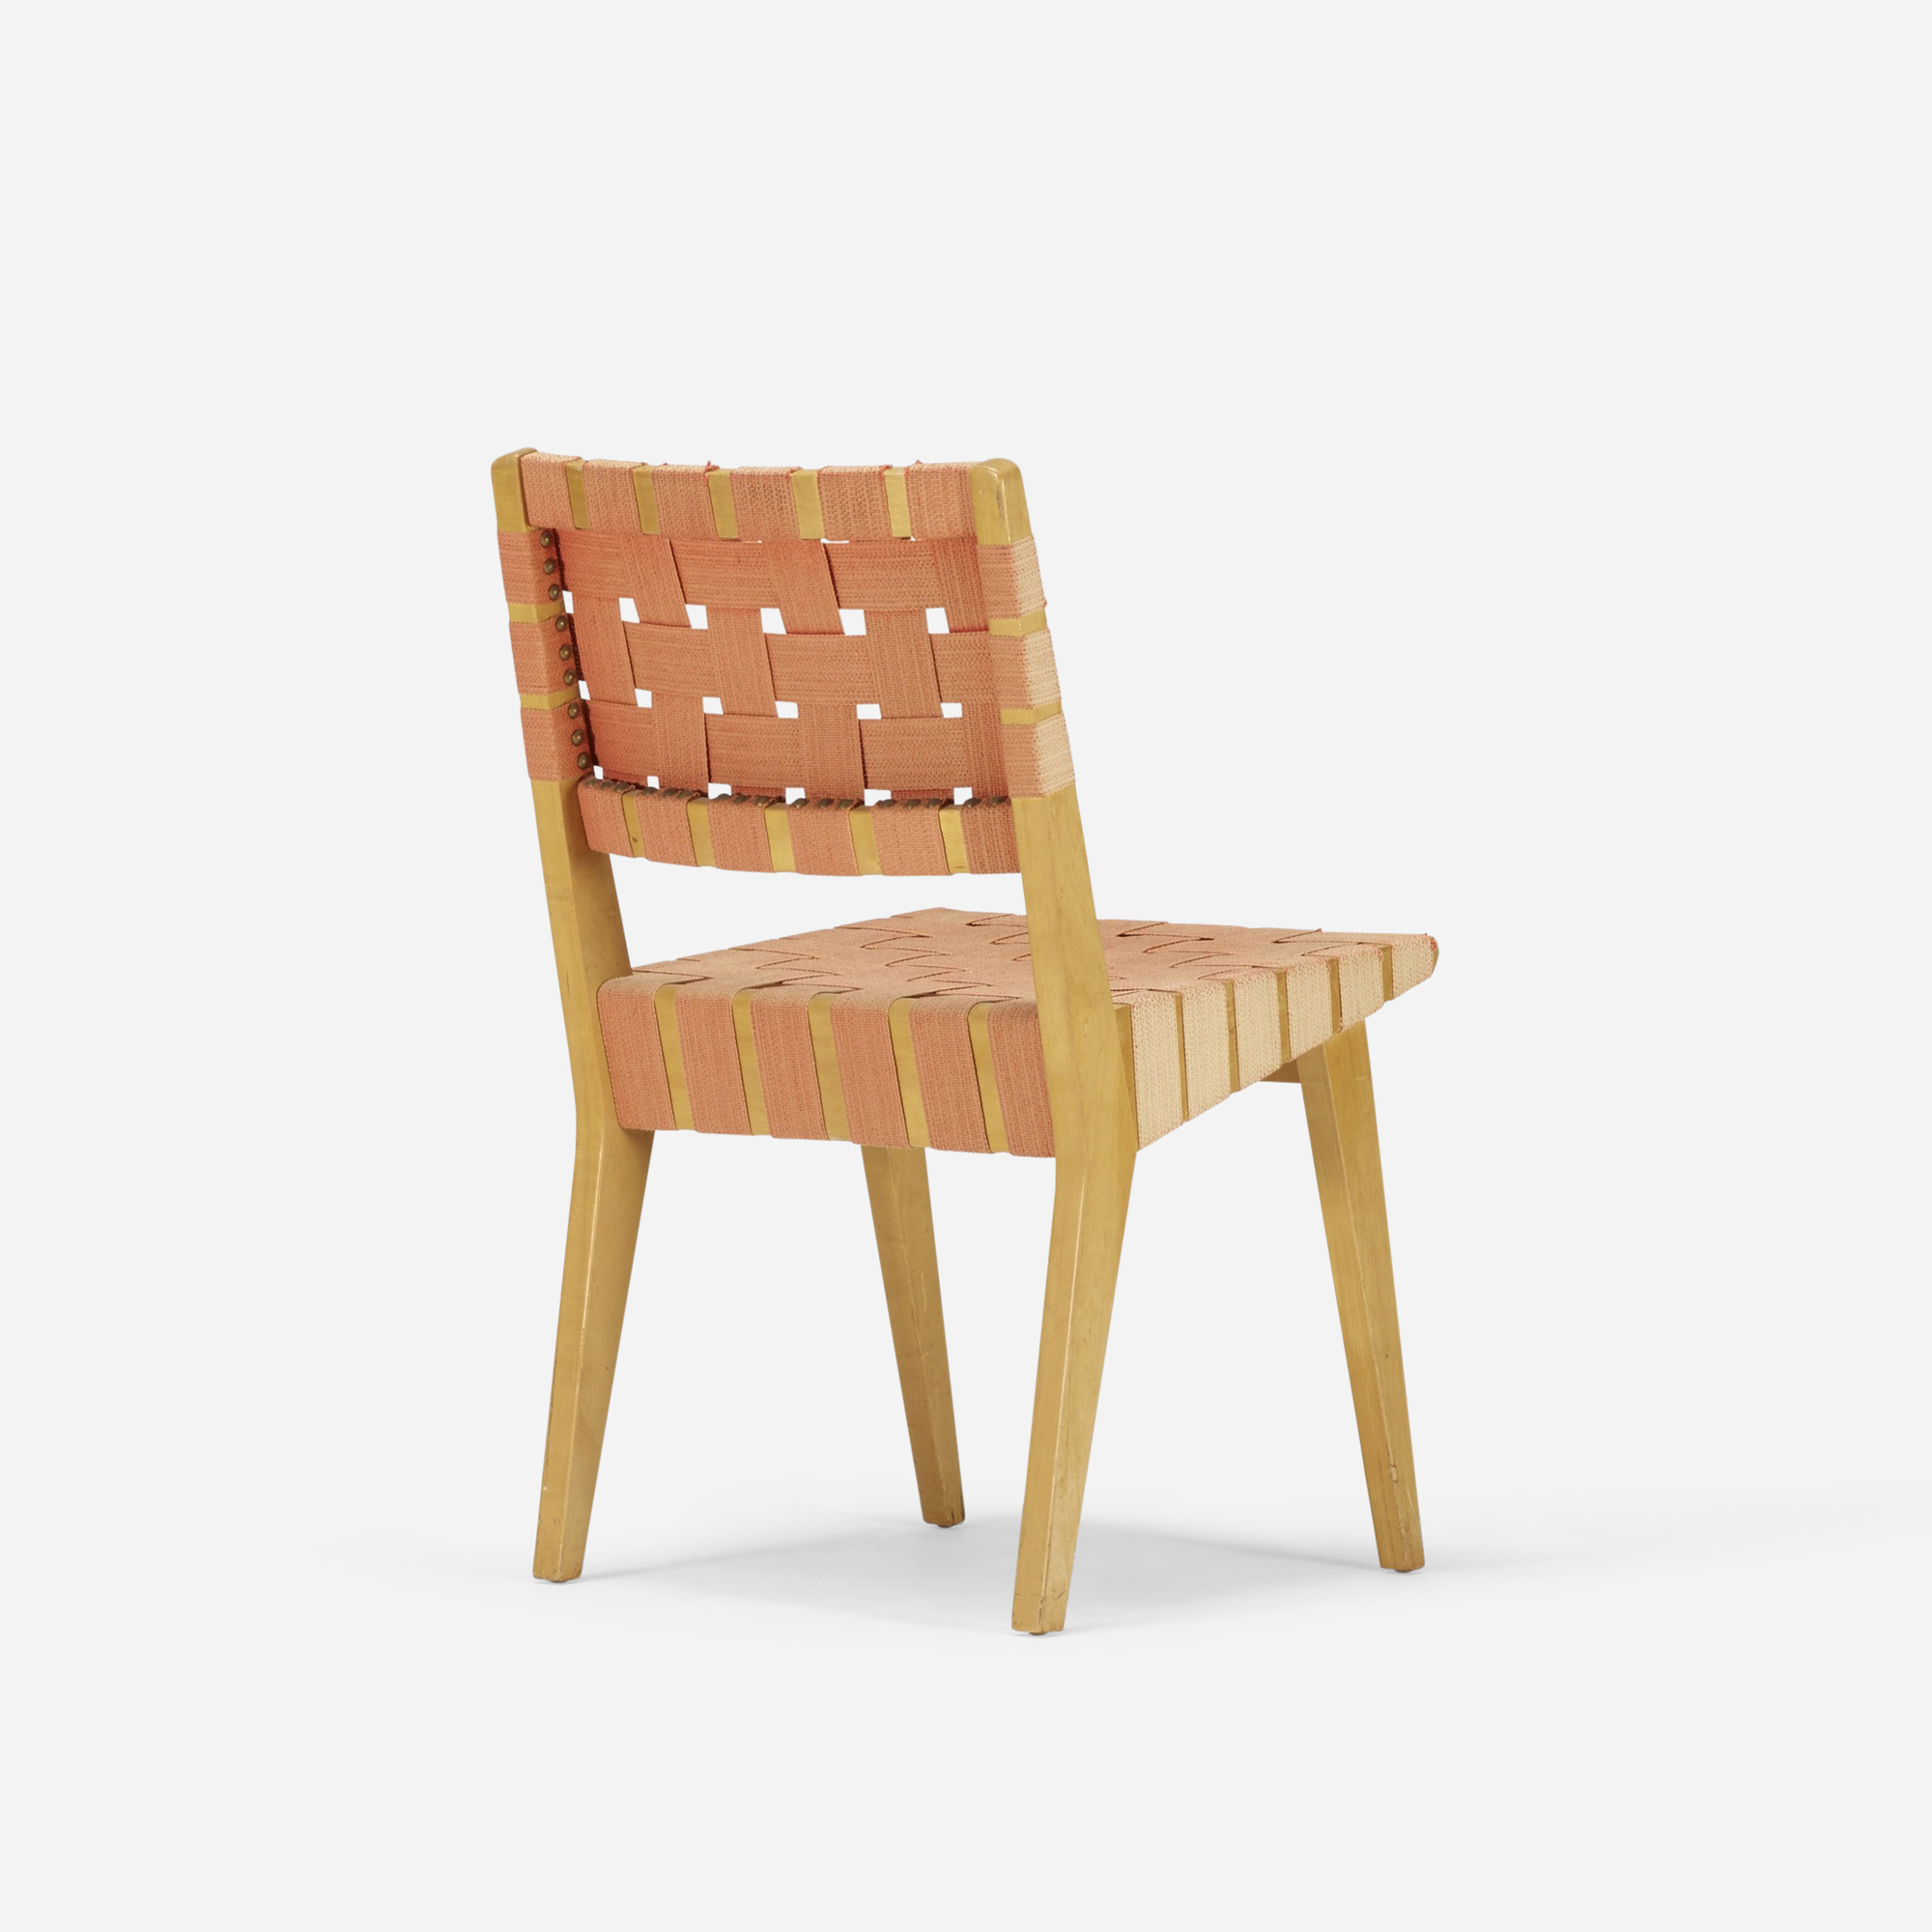 682: Jens Risom / chair (2 of 3)